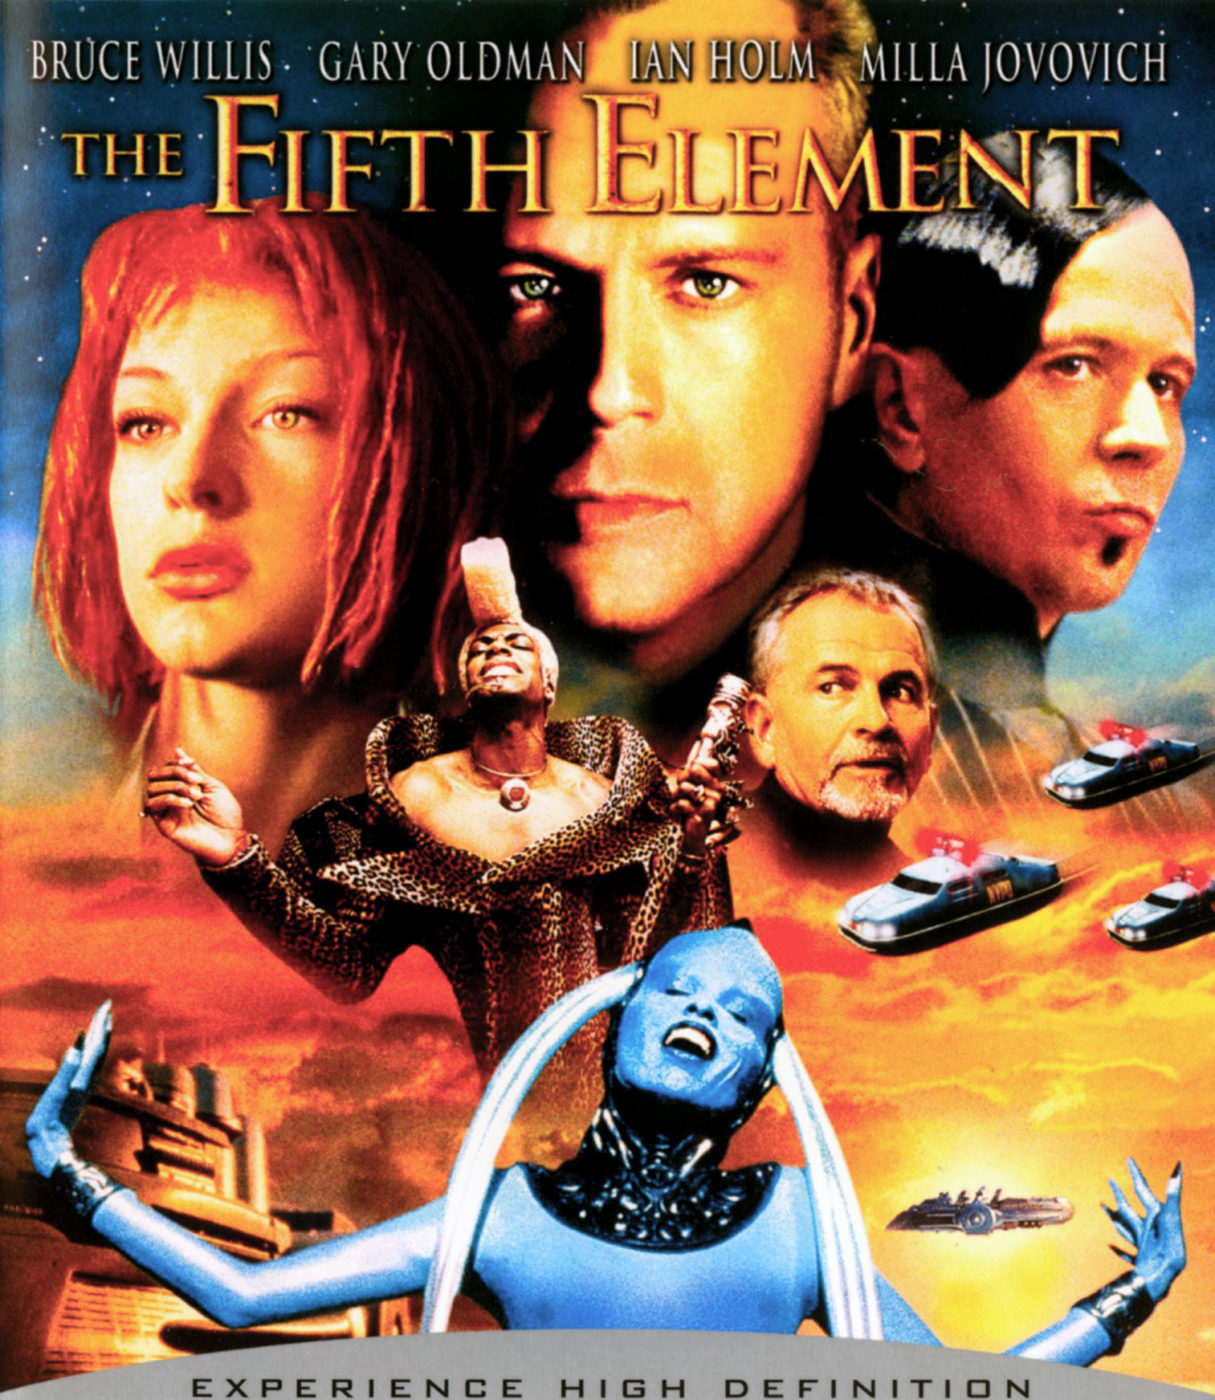 The Fifth Element Review   Top 100 Sci Fi Movies Bruce Willis Imdb